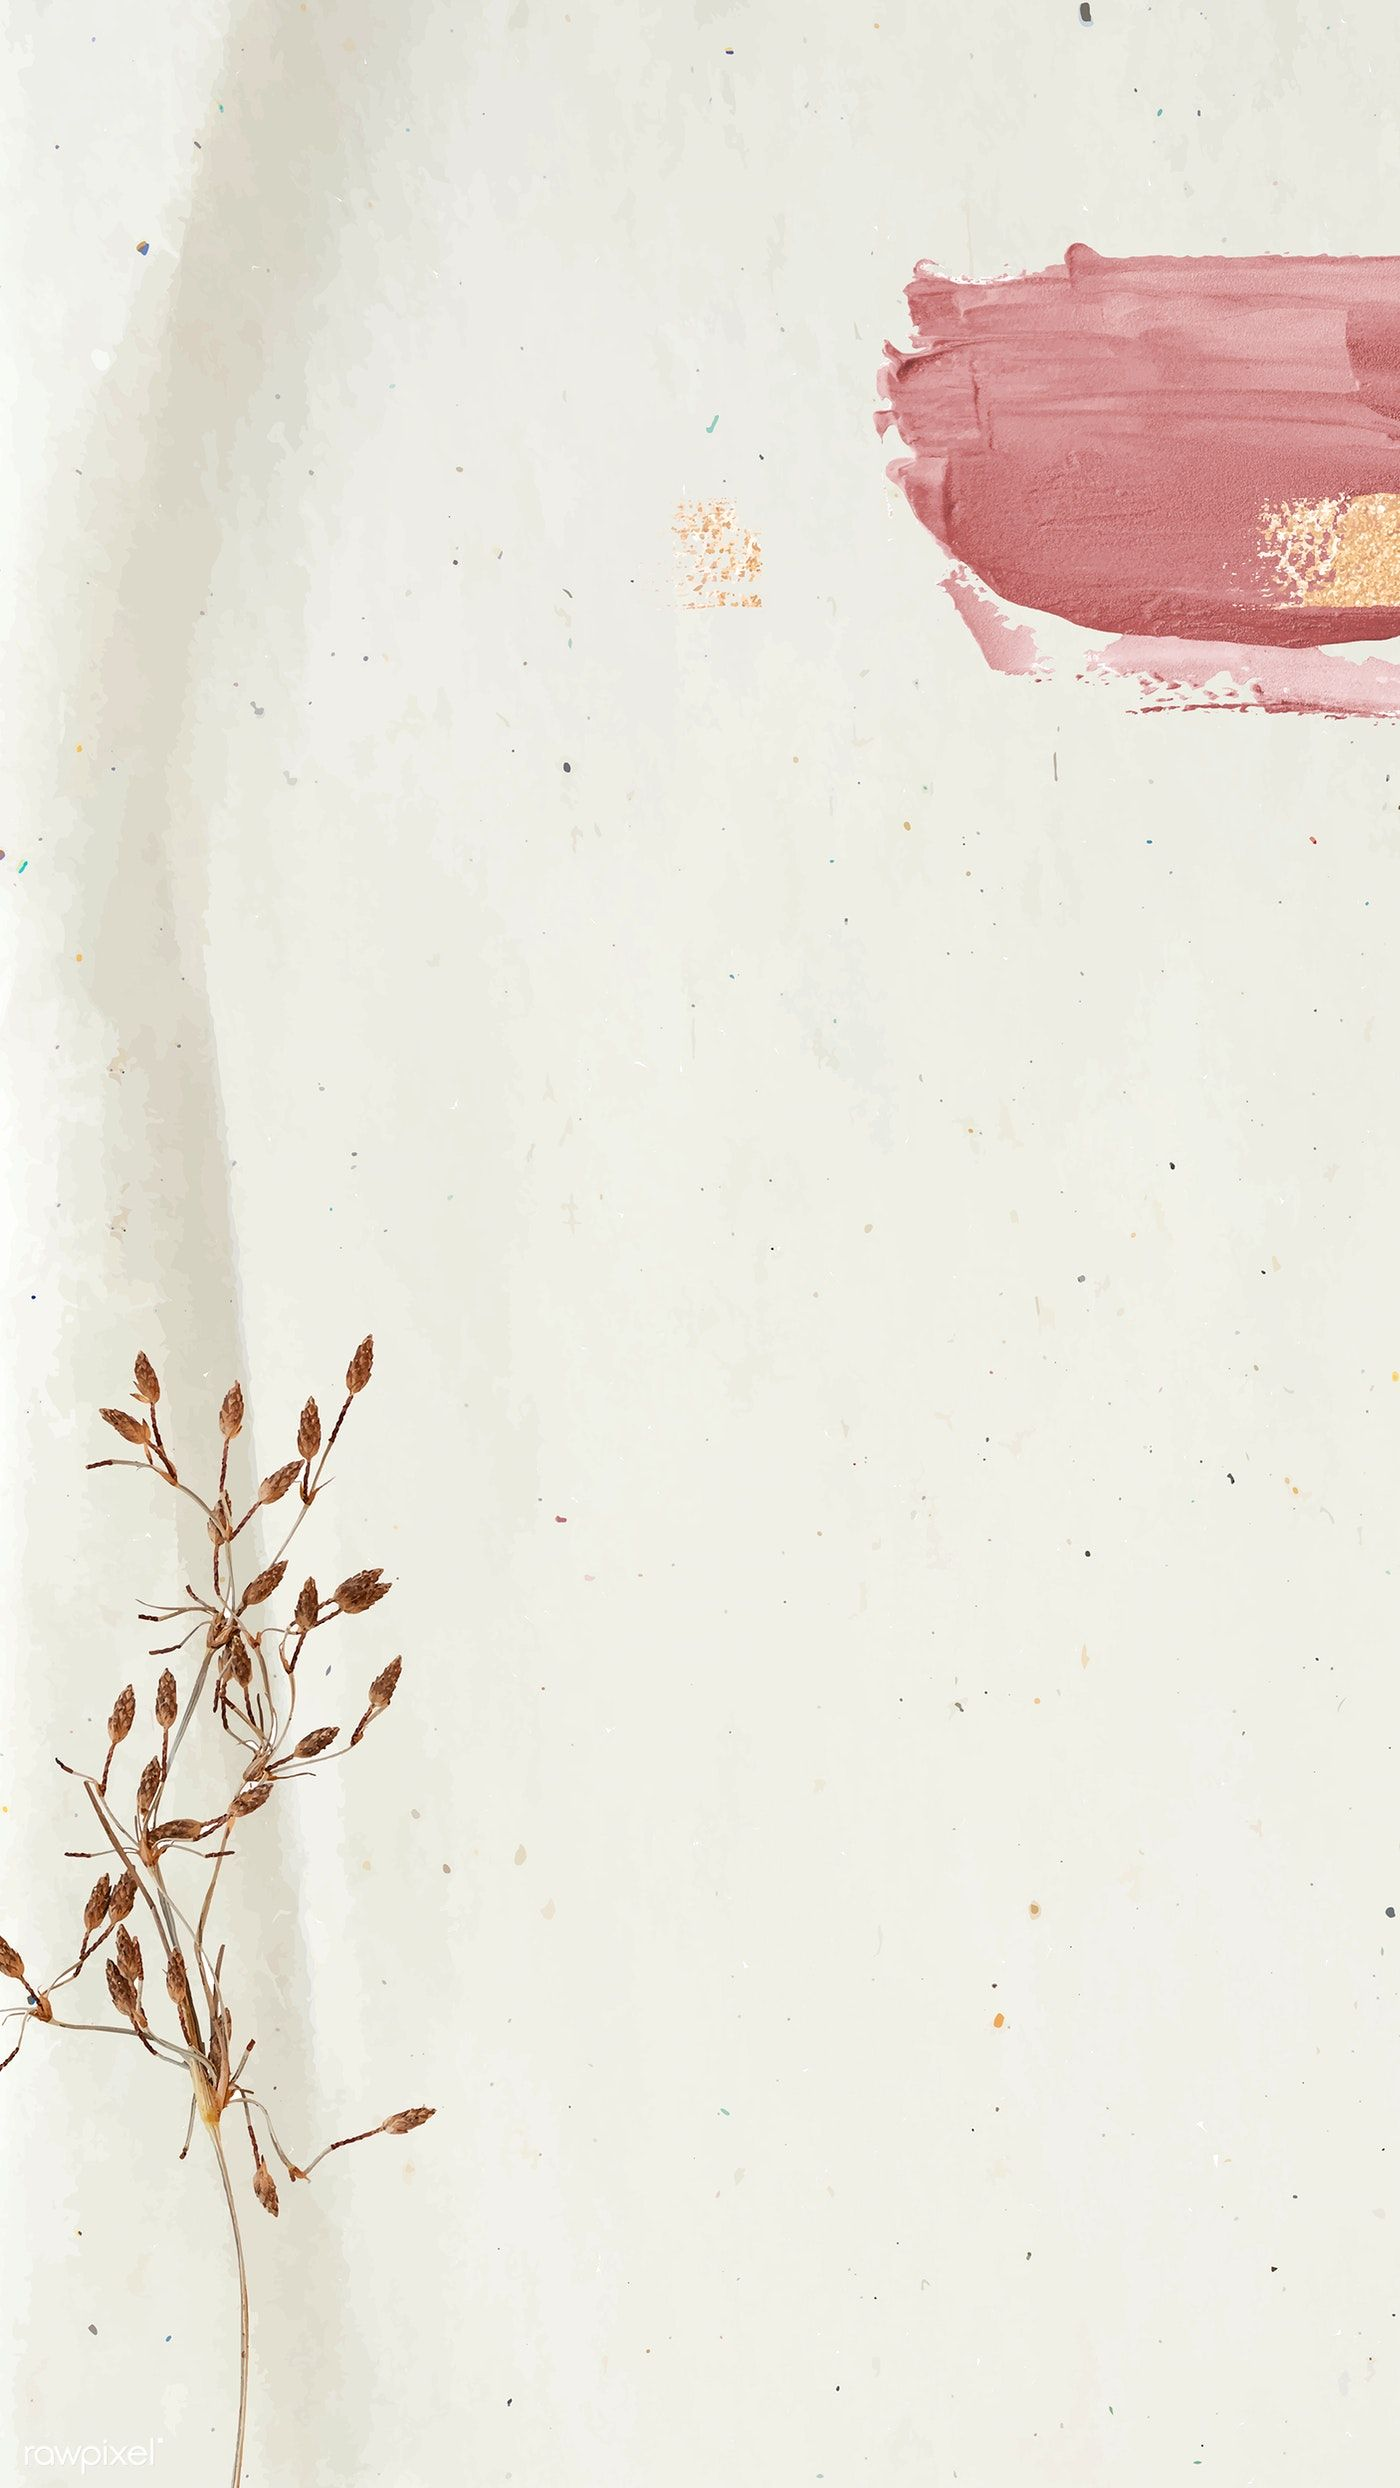 Download premium vector of Floral decorated with pink bush stroke on beige